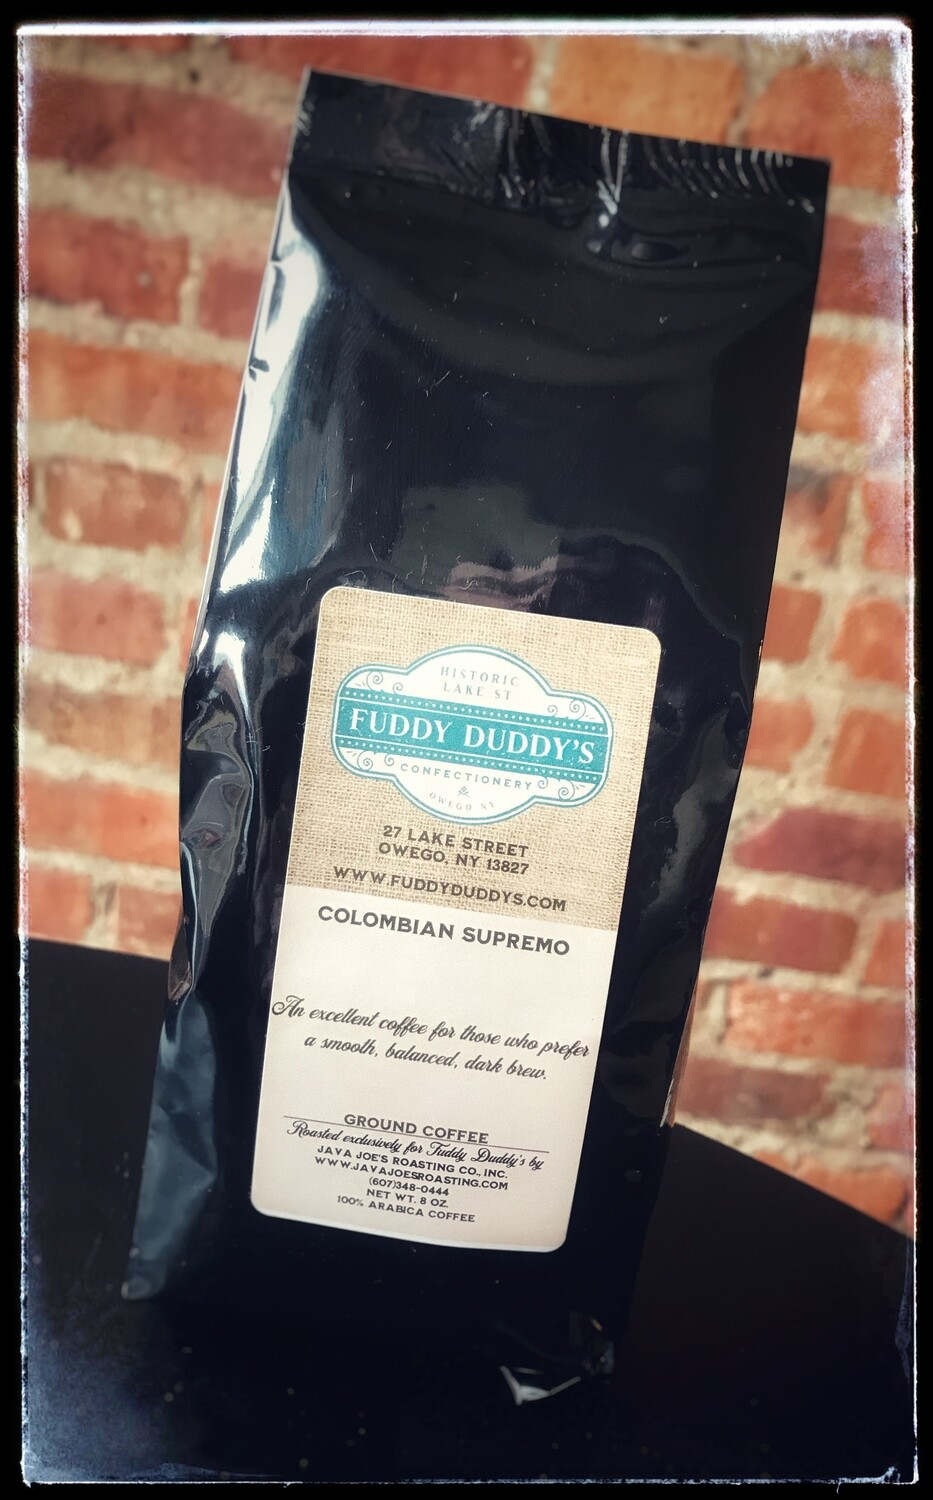 Ground Coffee - Colombian Suprimo - 8 oz